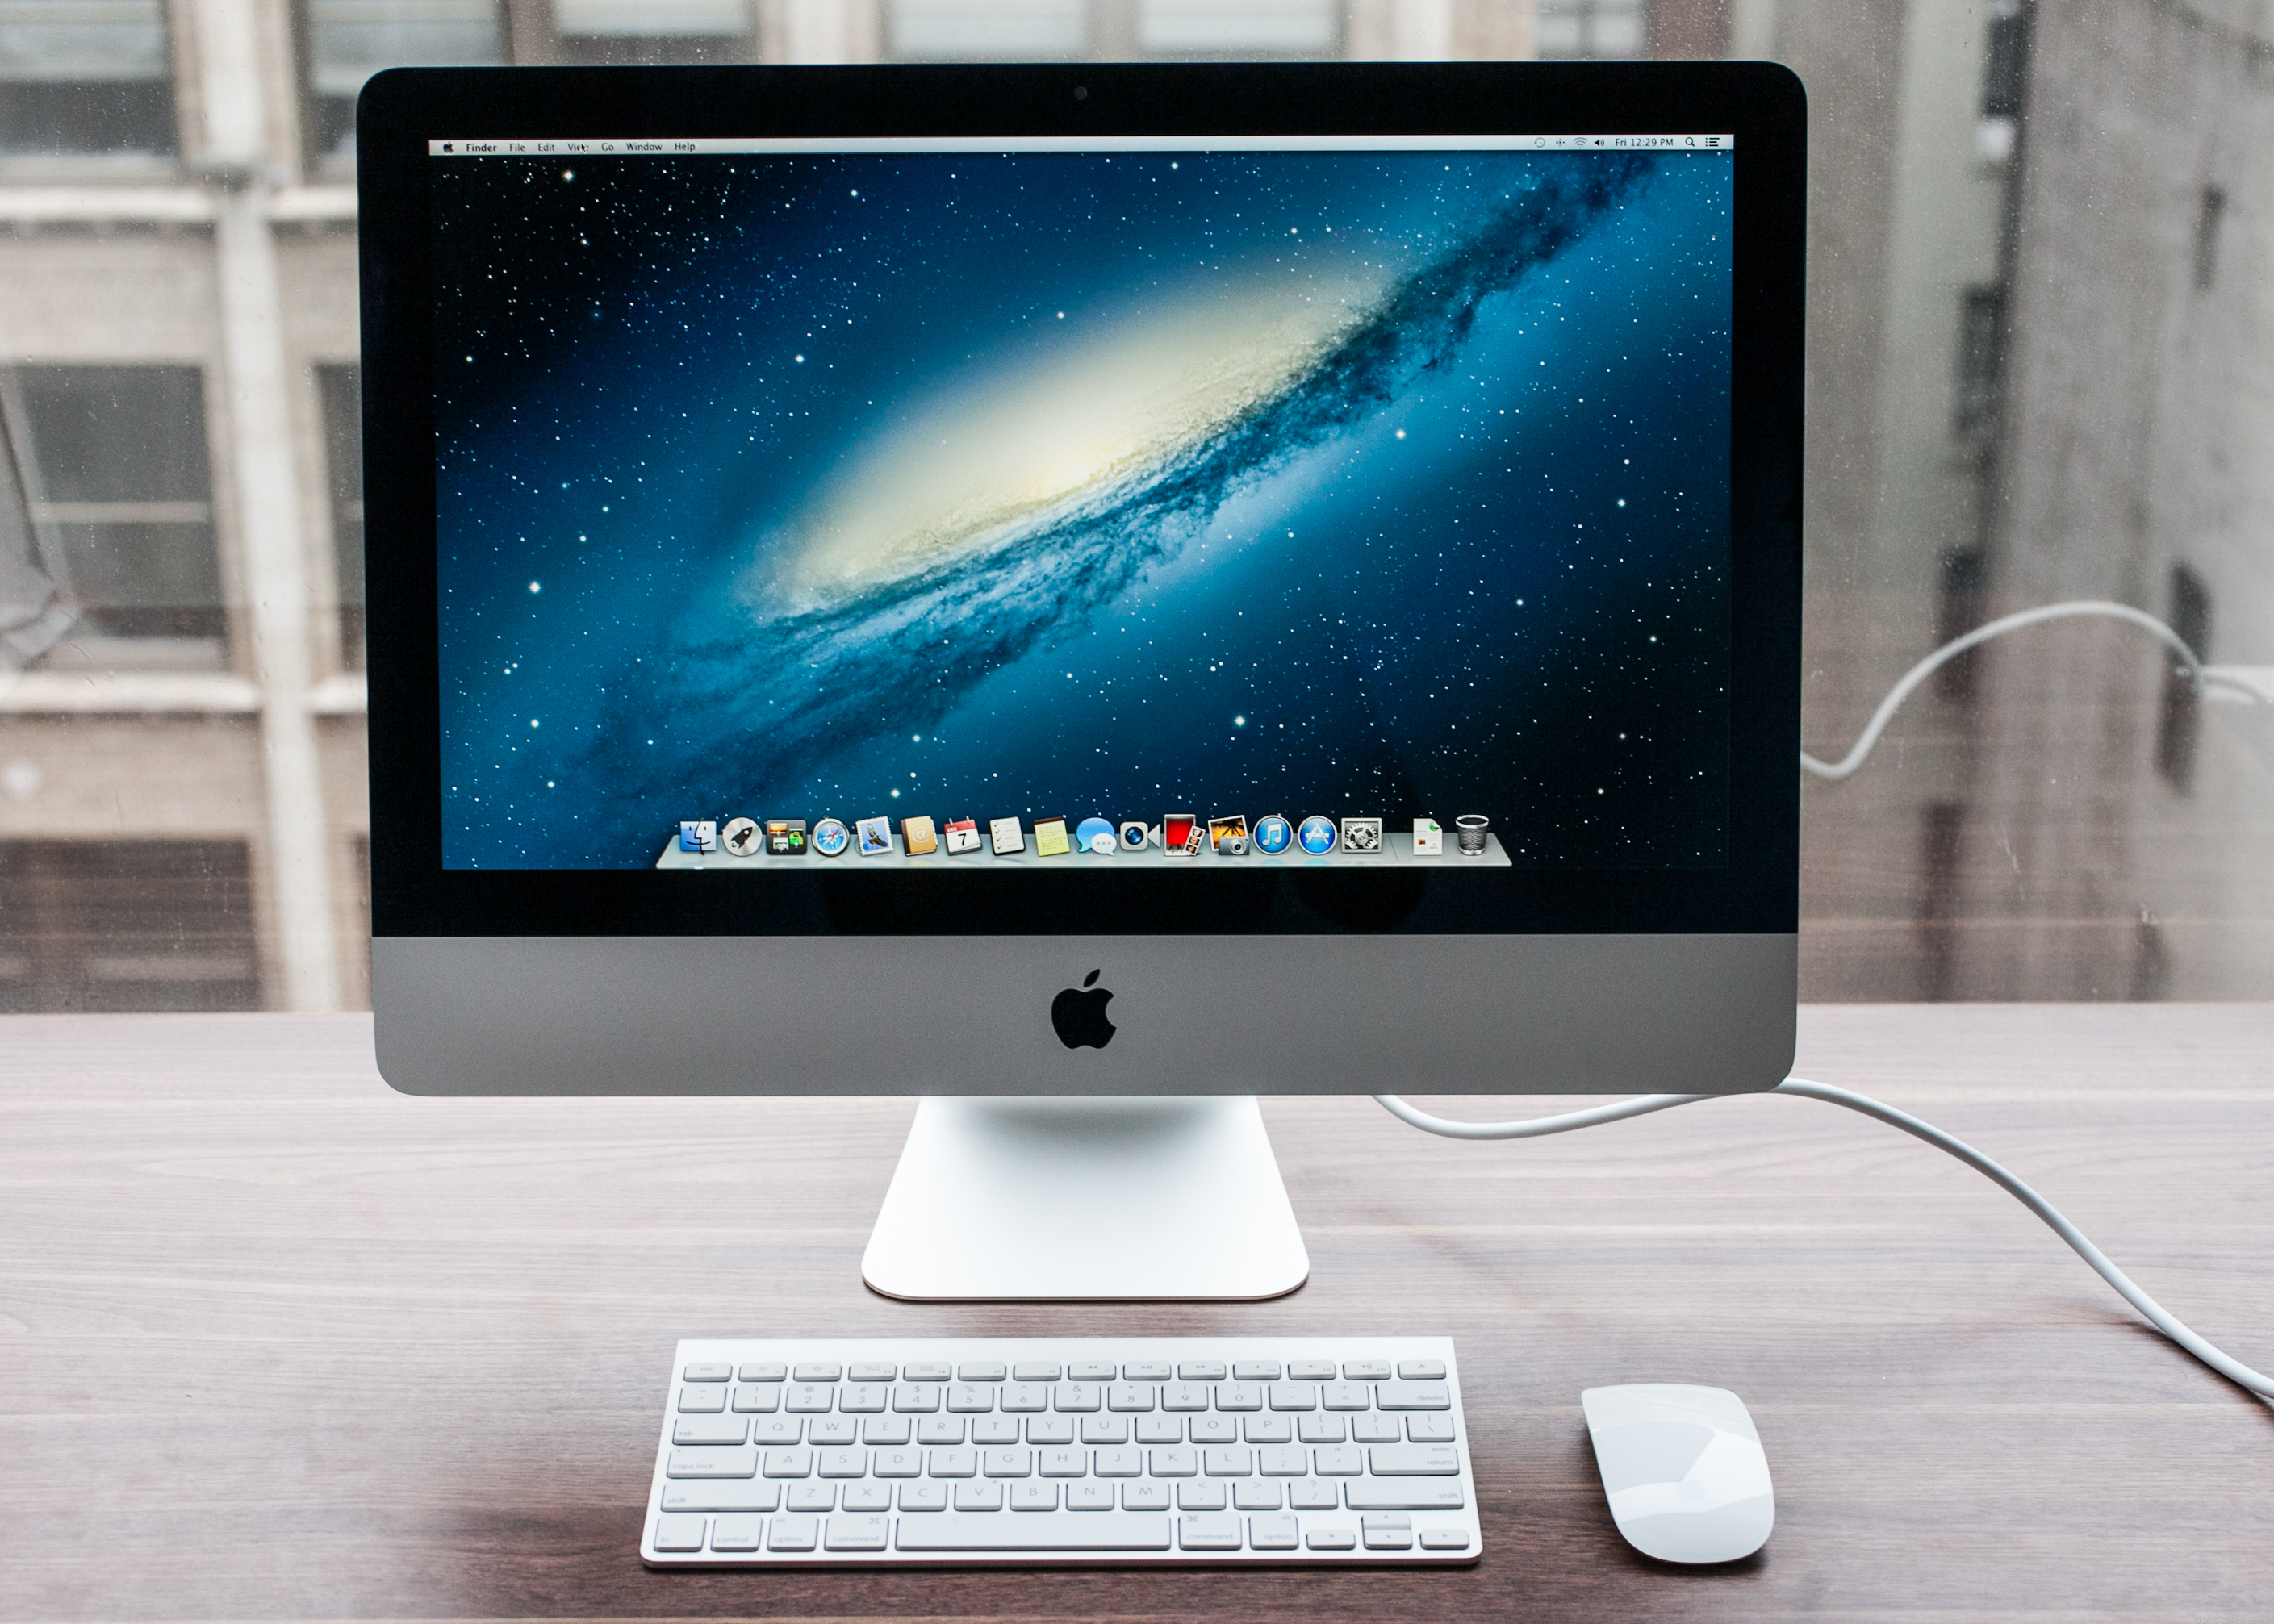 Apple iMac (21.5-inch, 2.9GHz, fall 2012)